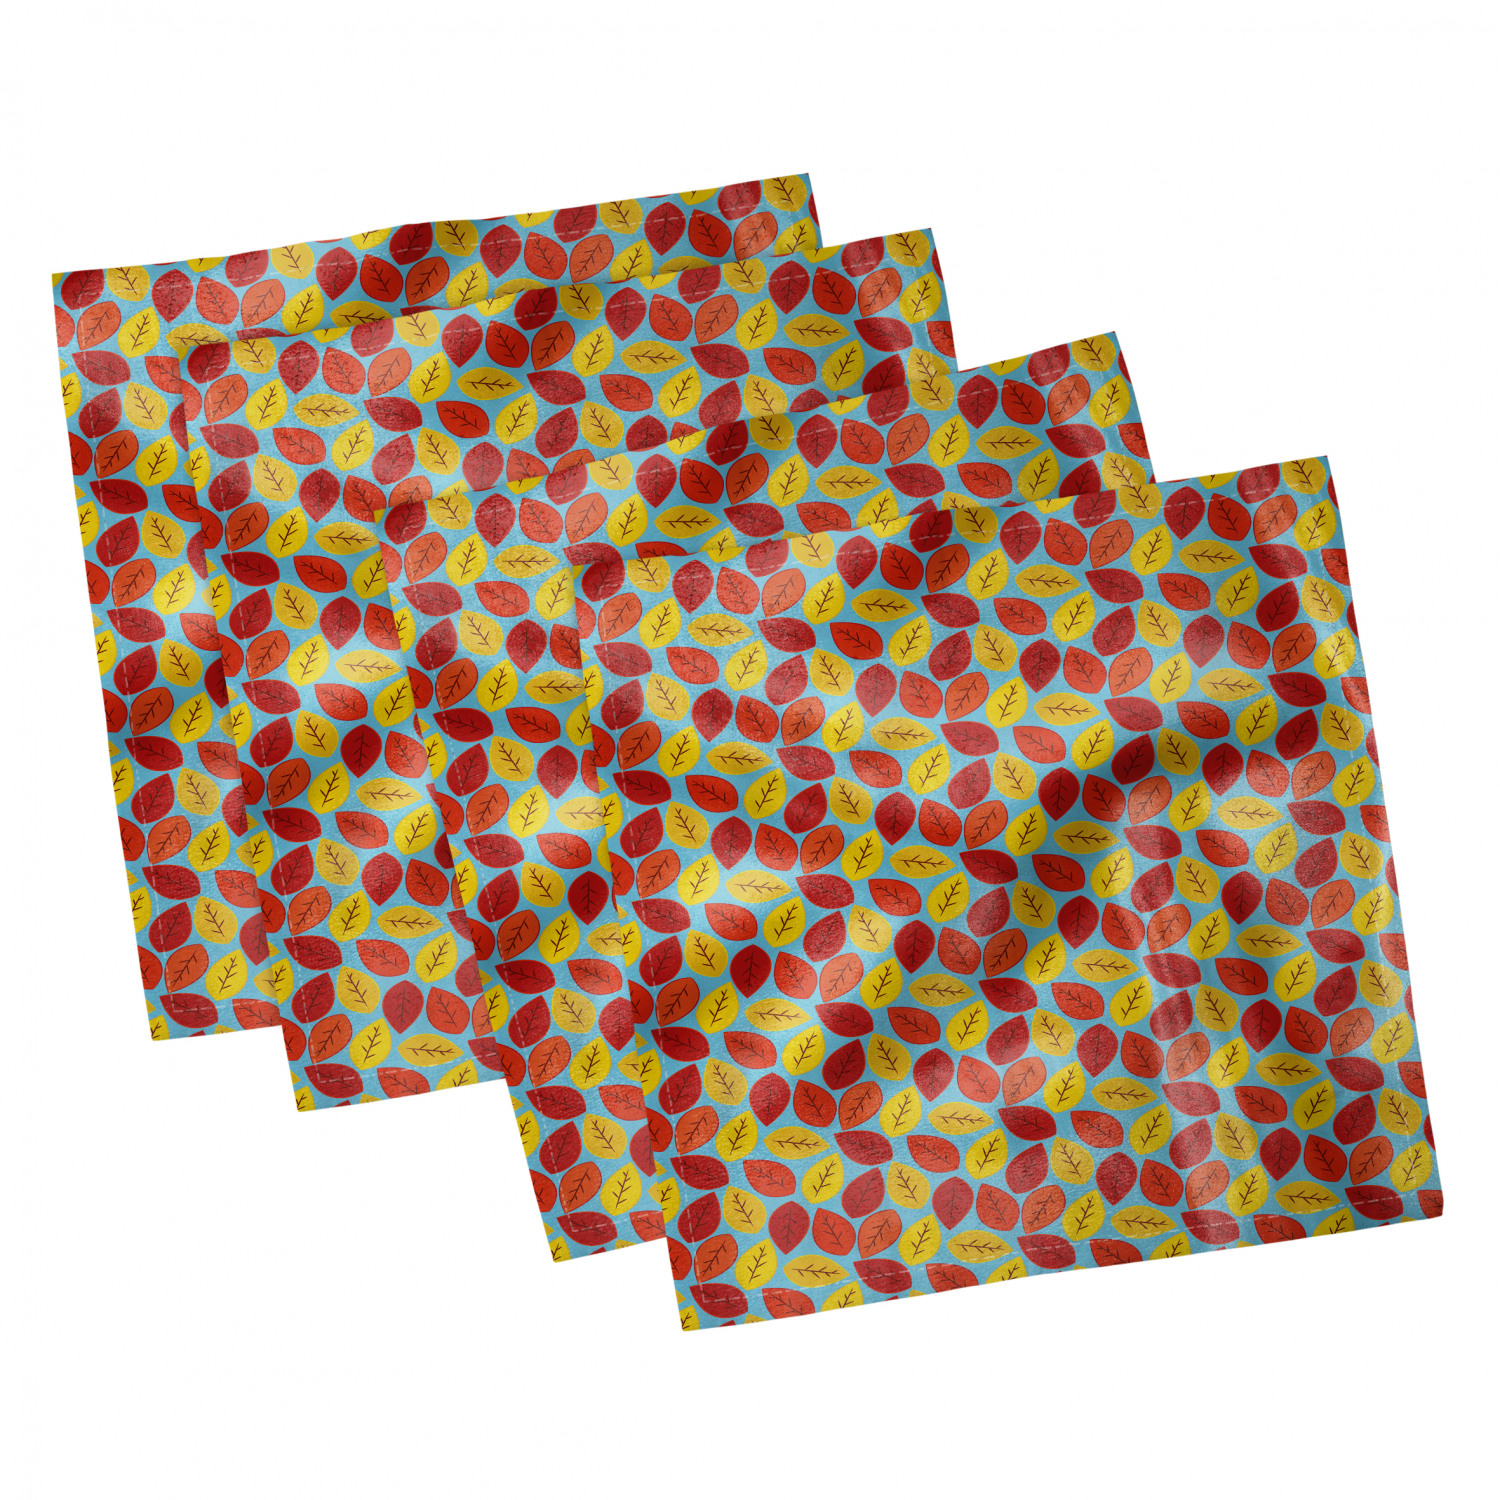 thumbnail 21 - Ambesonne-Leaves-Forest-Decorative-Satin-Napkins-Set-of-4-Party-Dinner-Fabric